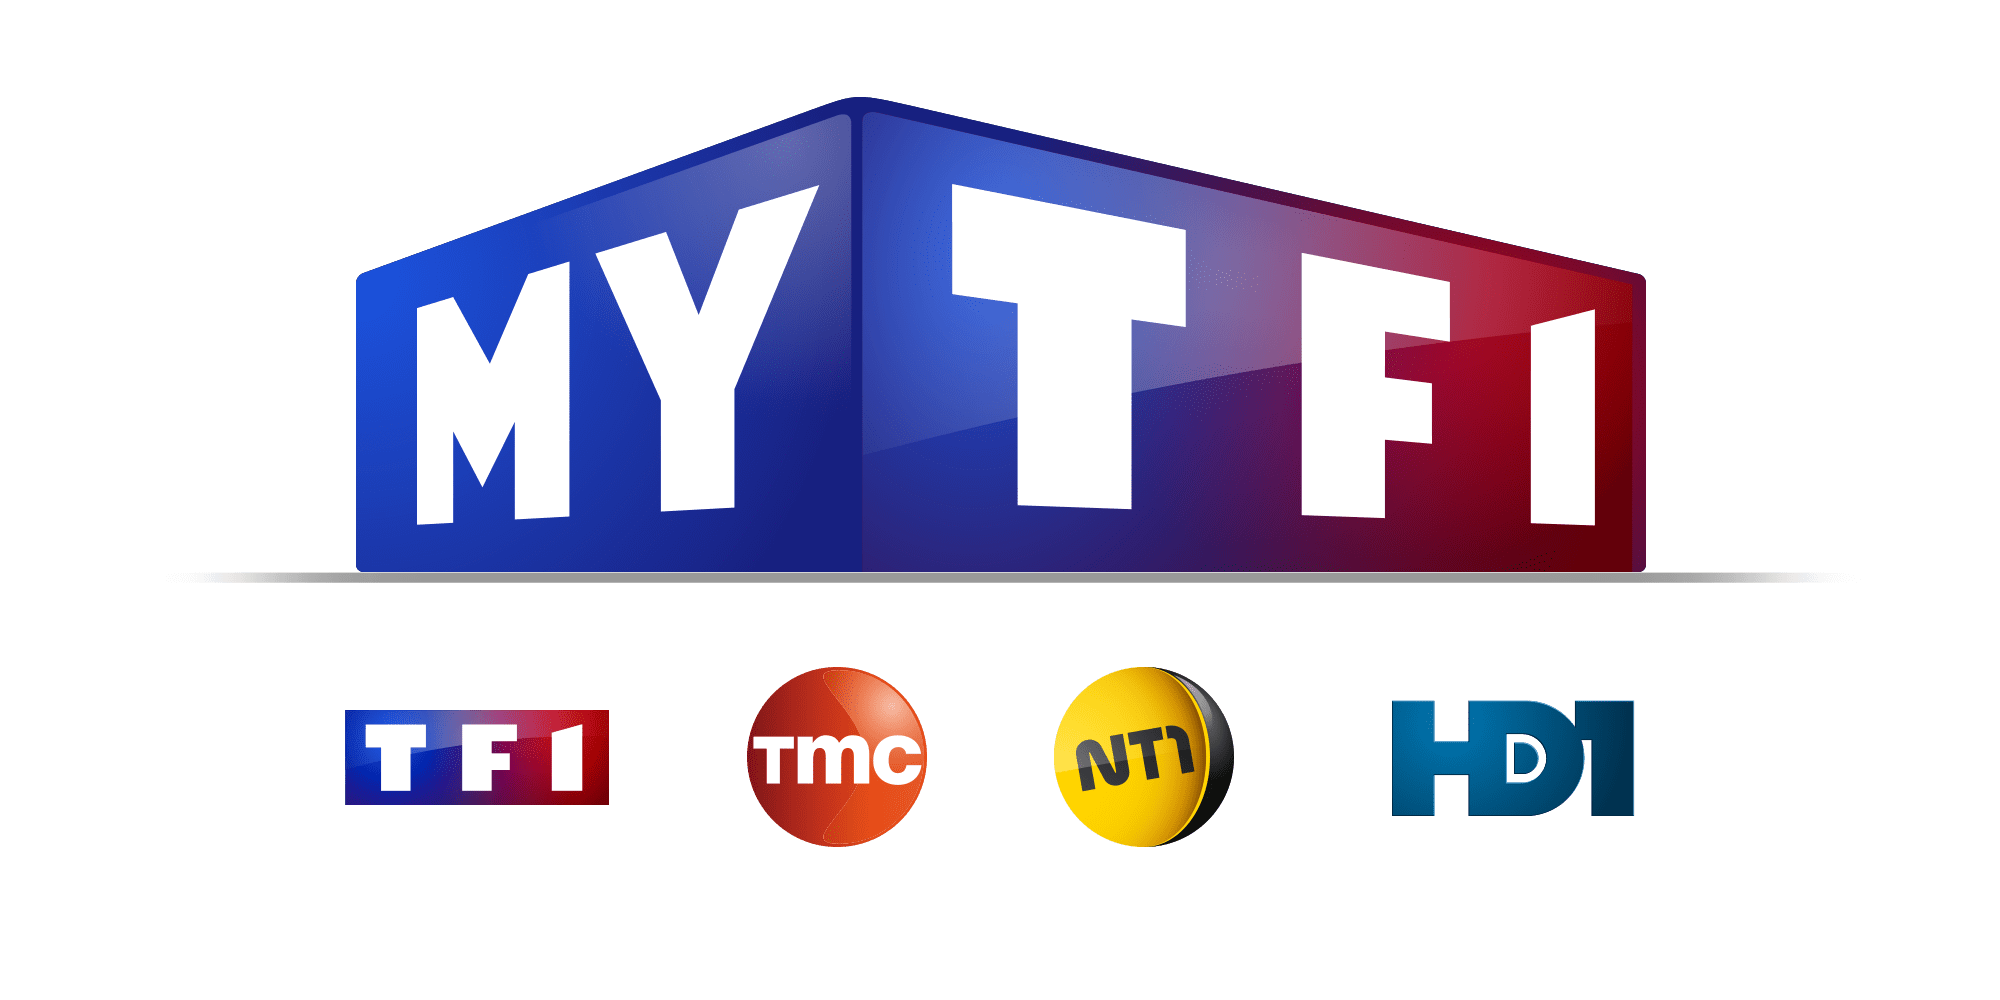 Here you will get all types of png images with transparent background. Soirée #NewMyTF1 : Les stars de TF1, médias, presse, ils ...